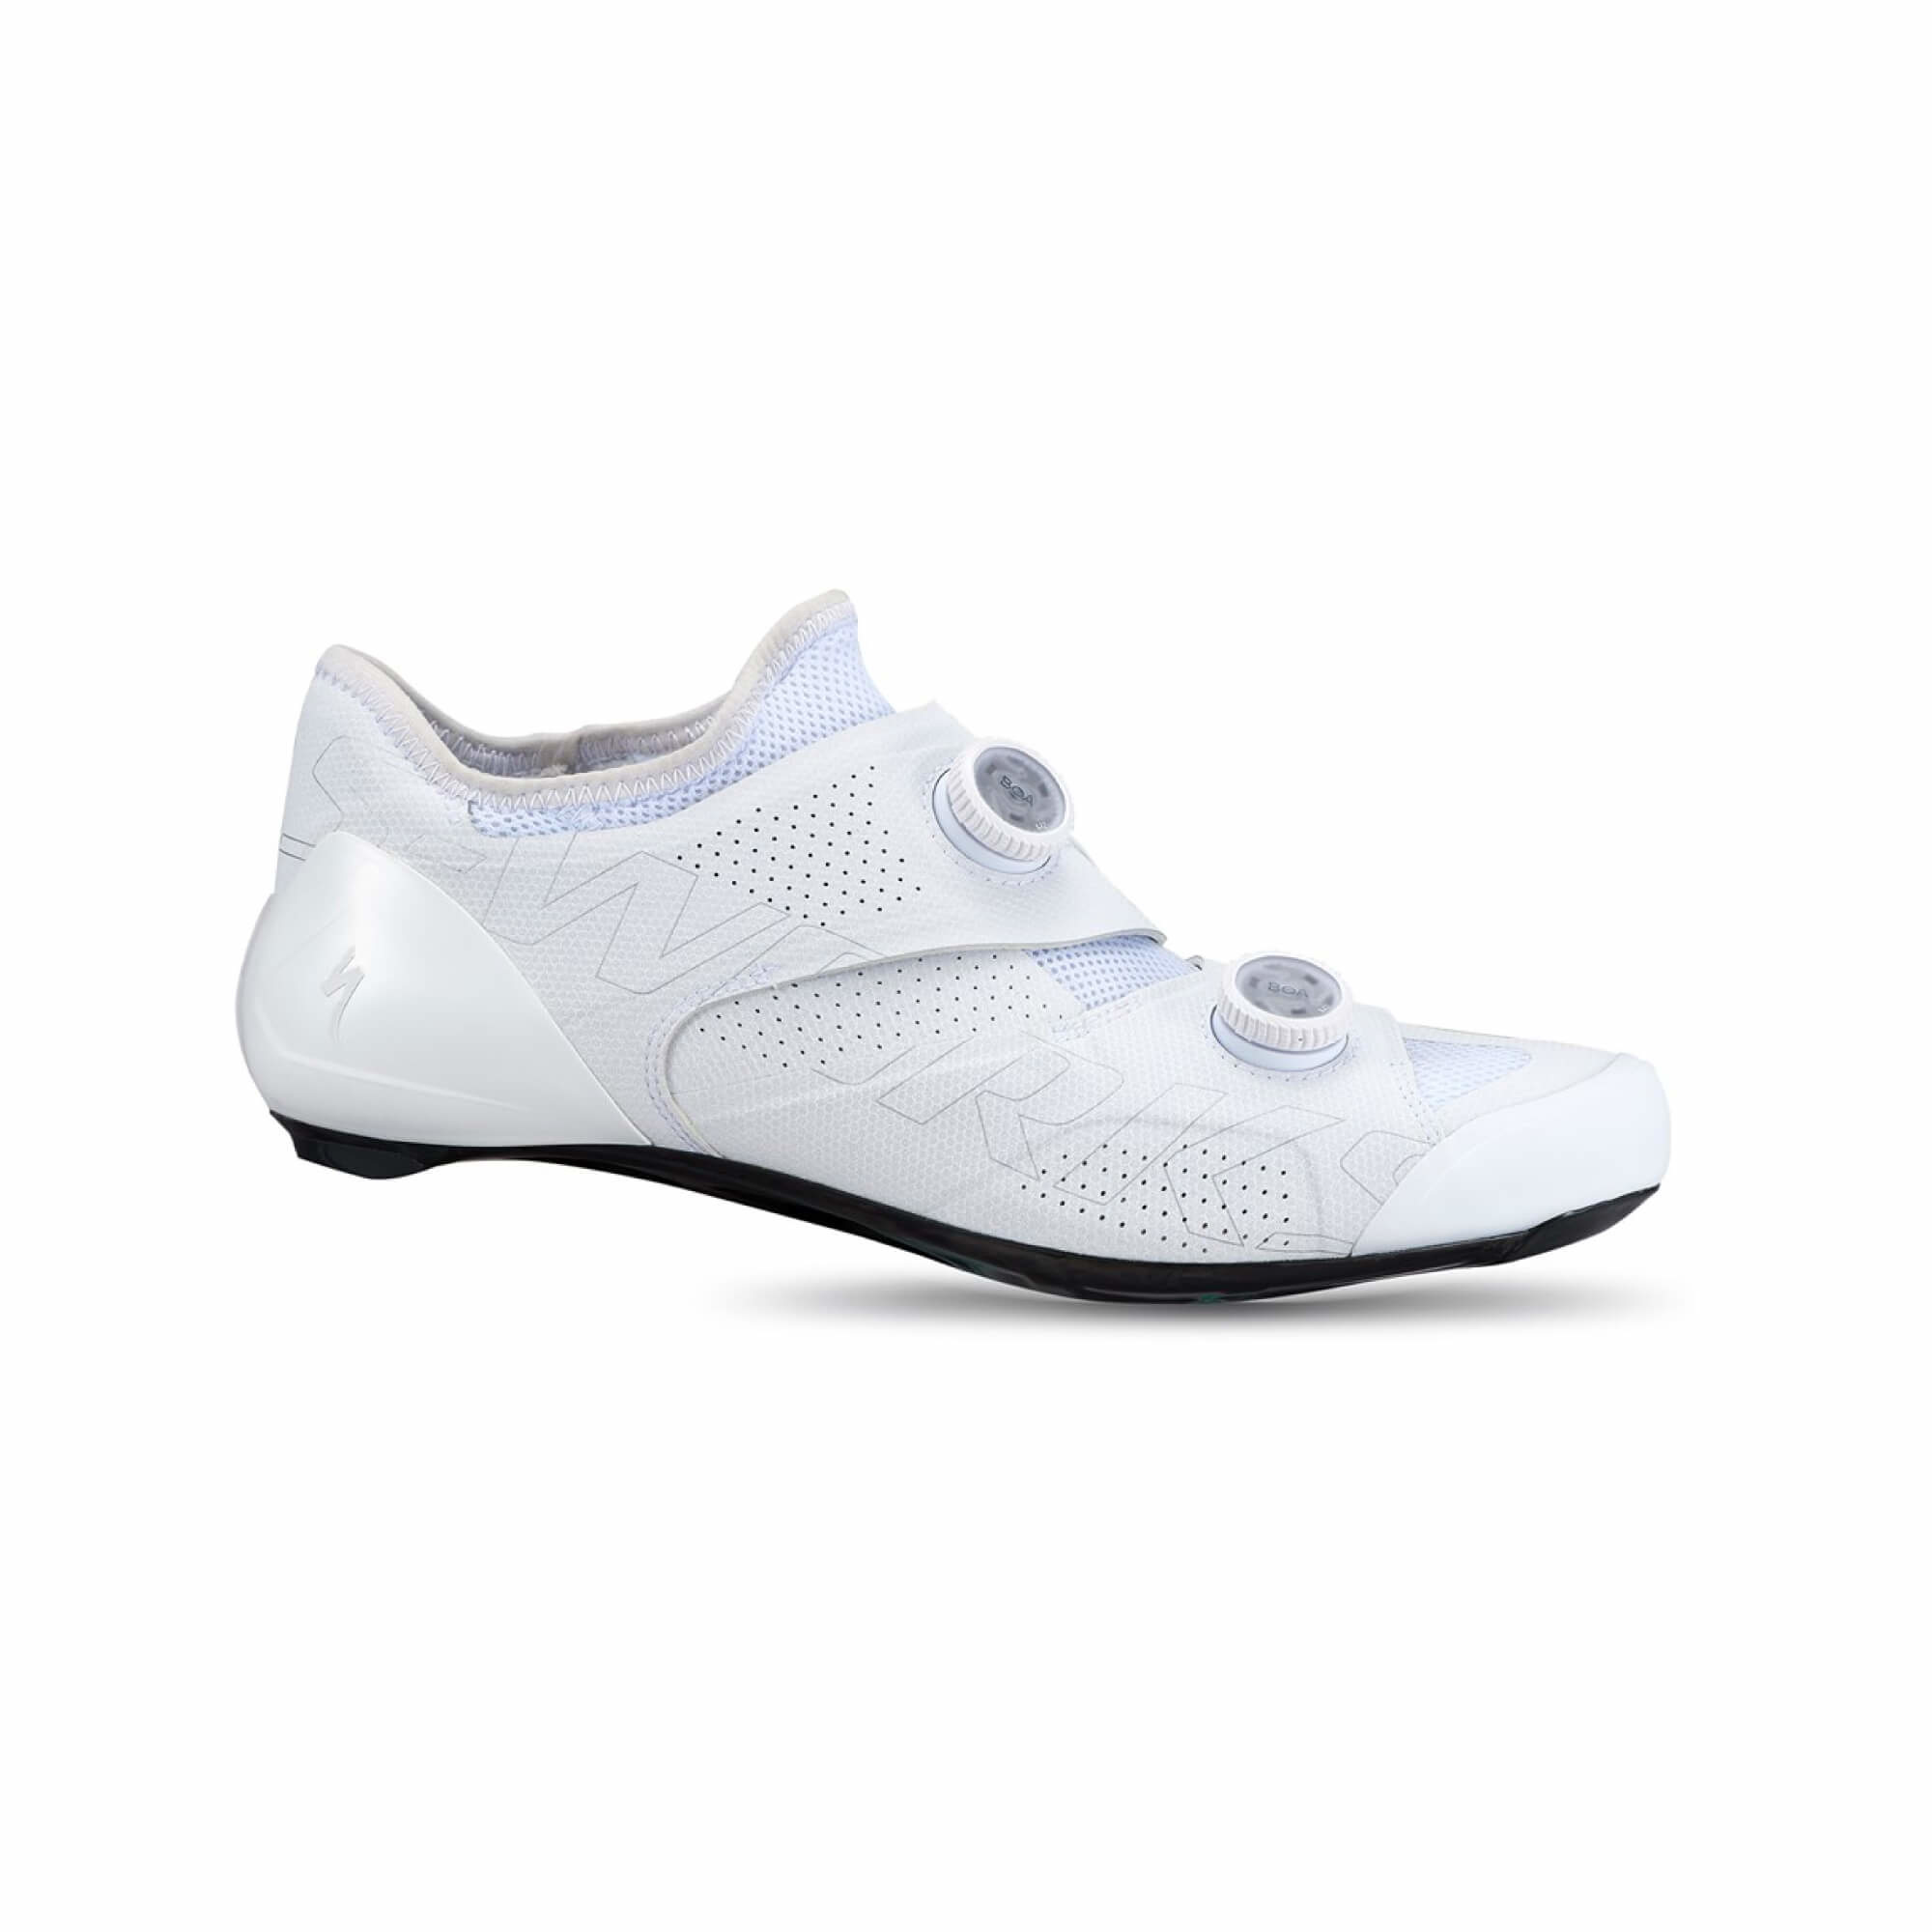 S-Works Ares Road Shoes 2021-1